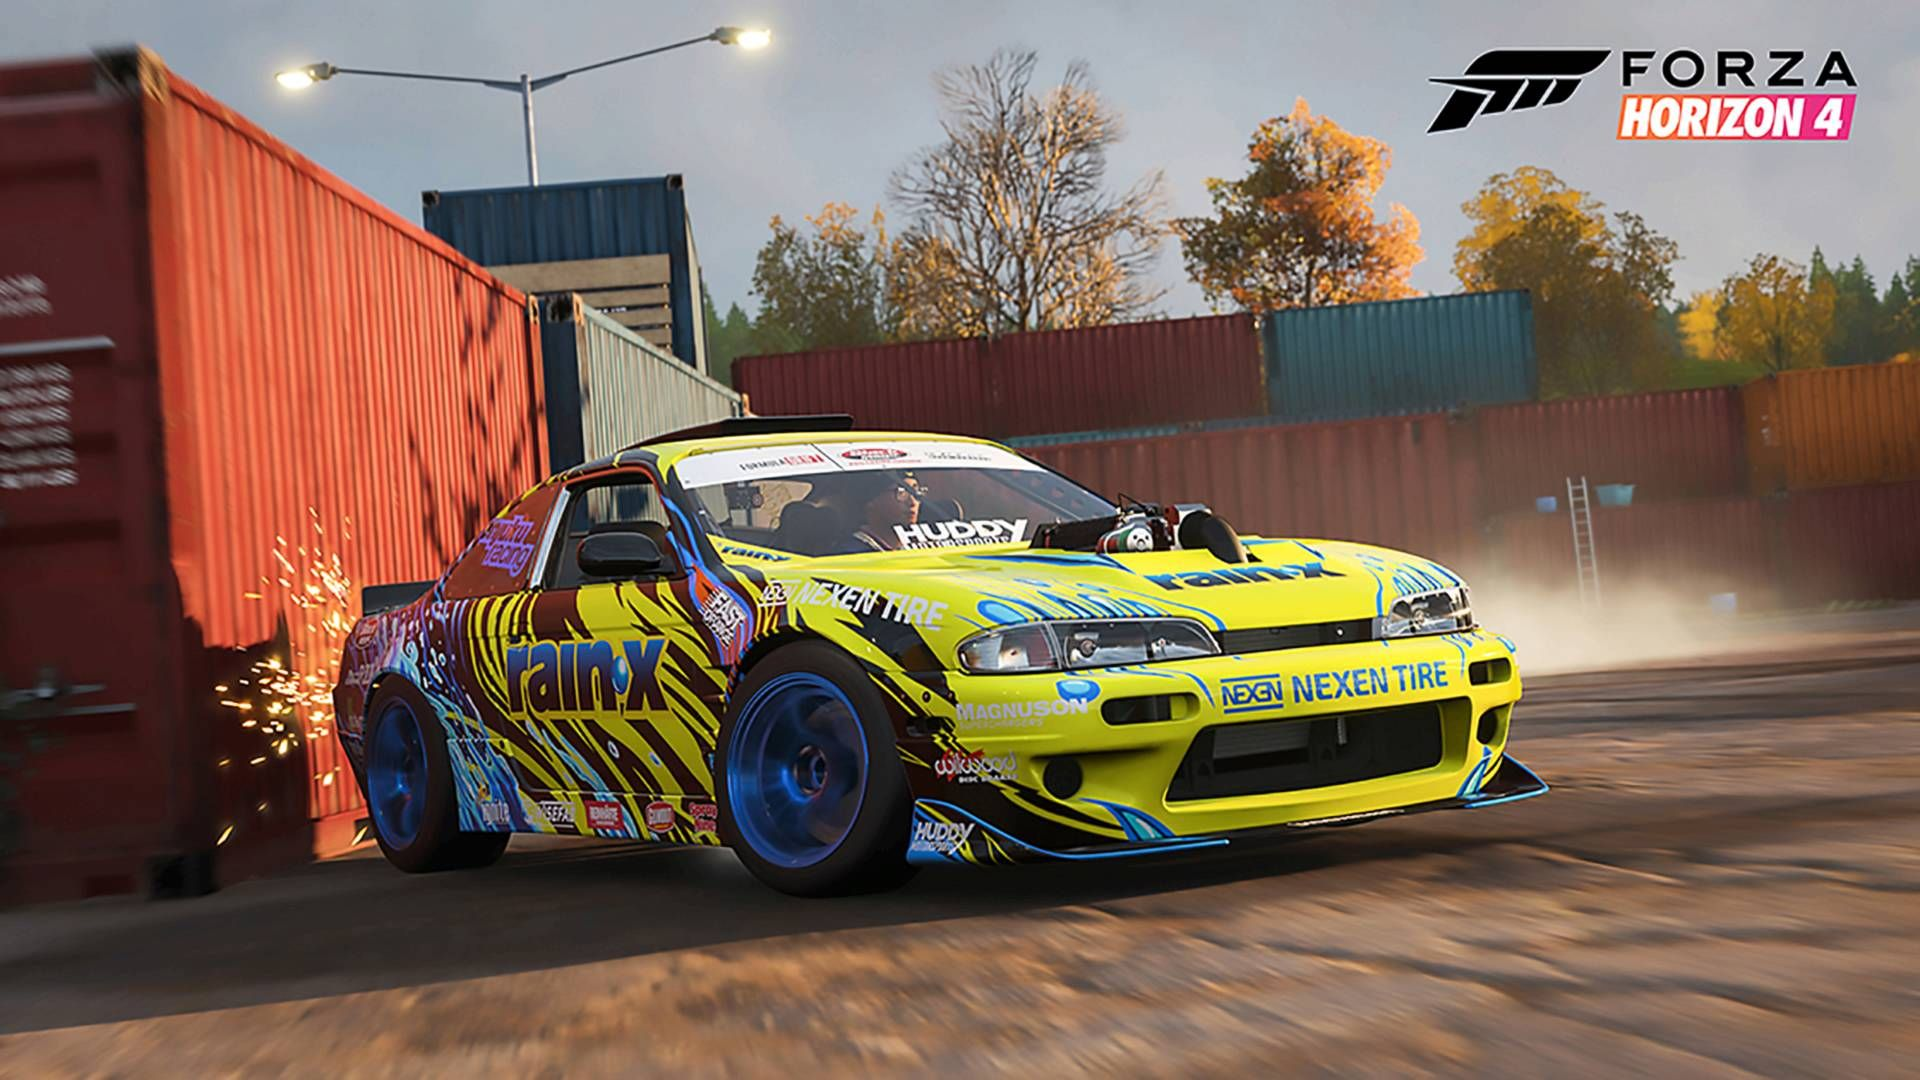 'Forza Horizon 4' Accelerating Away From The Competition